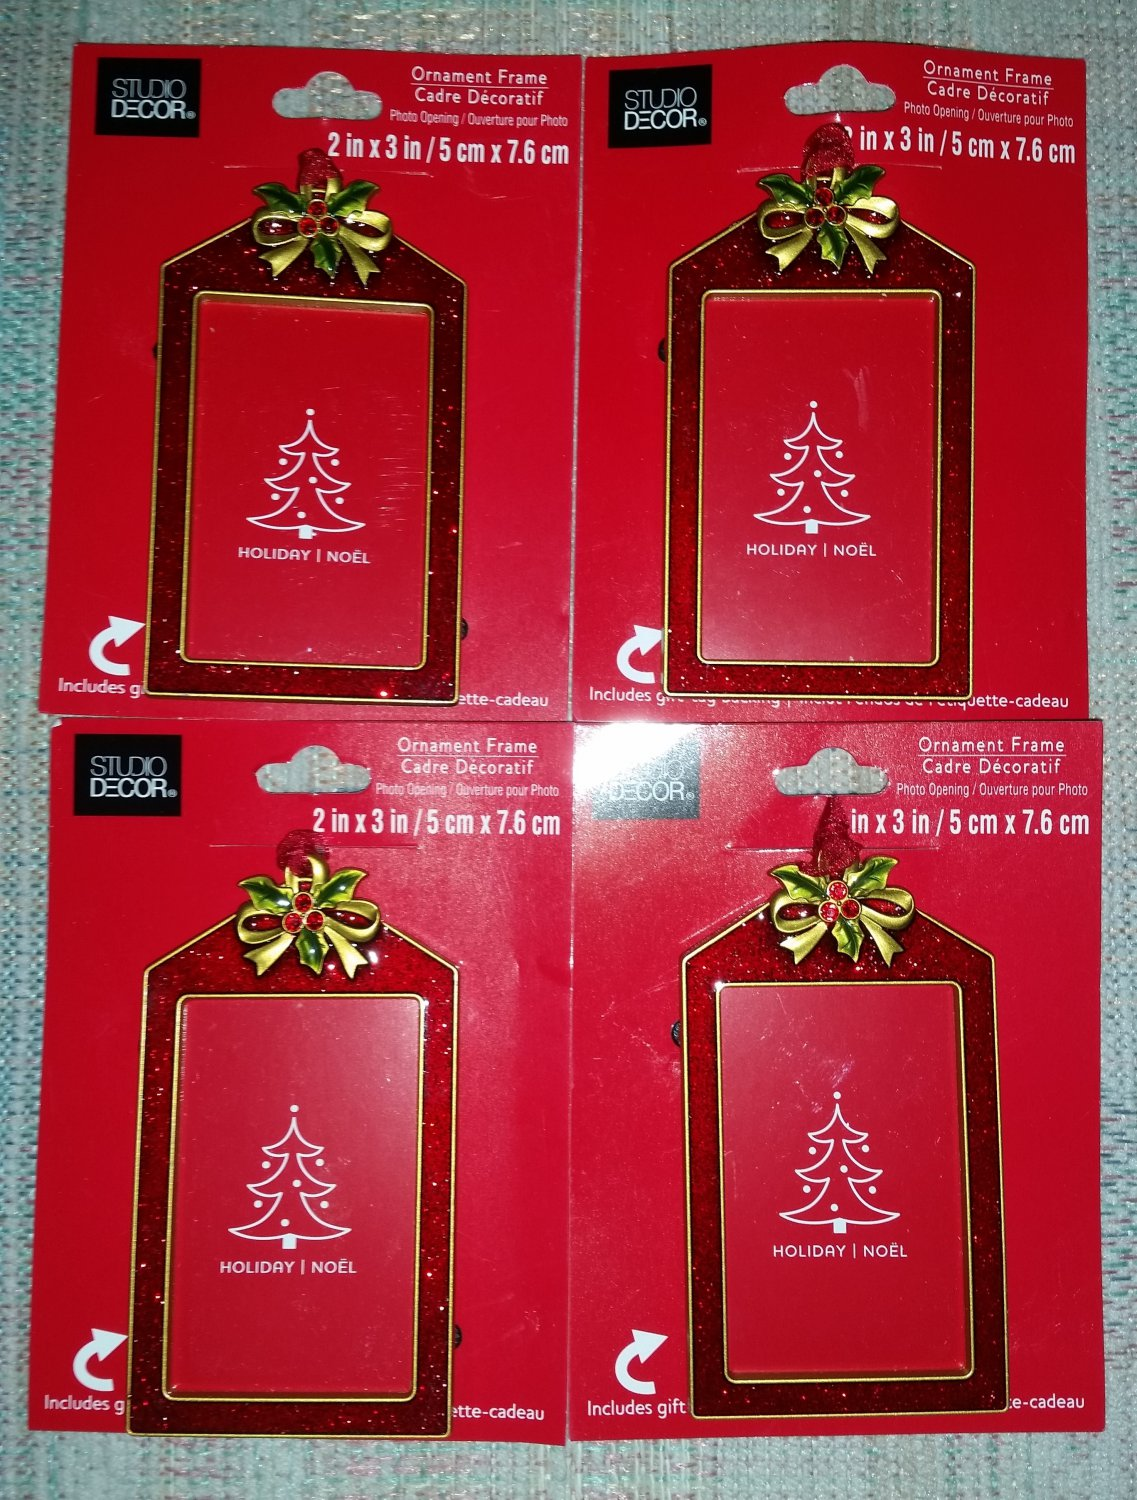 Red Glitter Enamel Photo Frame Ornament with Gift Tag Back-Lot of 4-Personalize your Holiday Gifts!